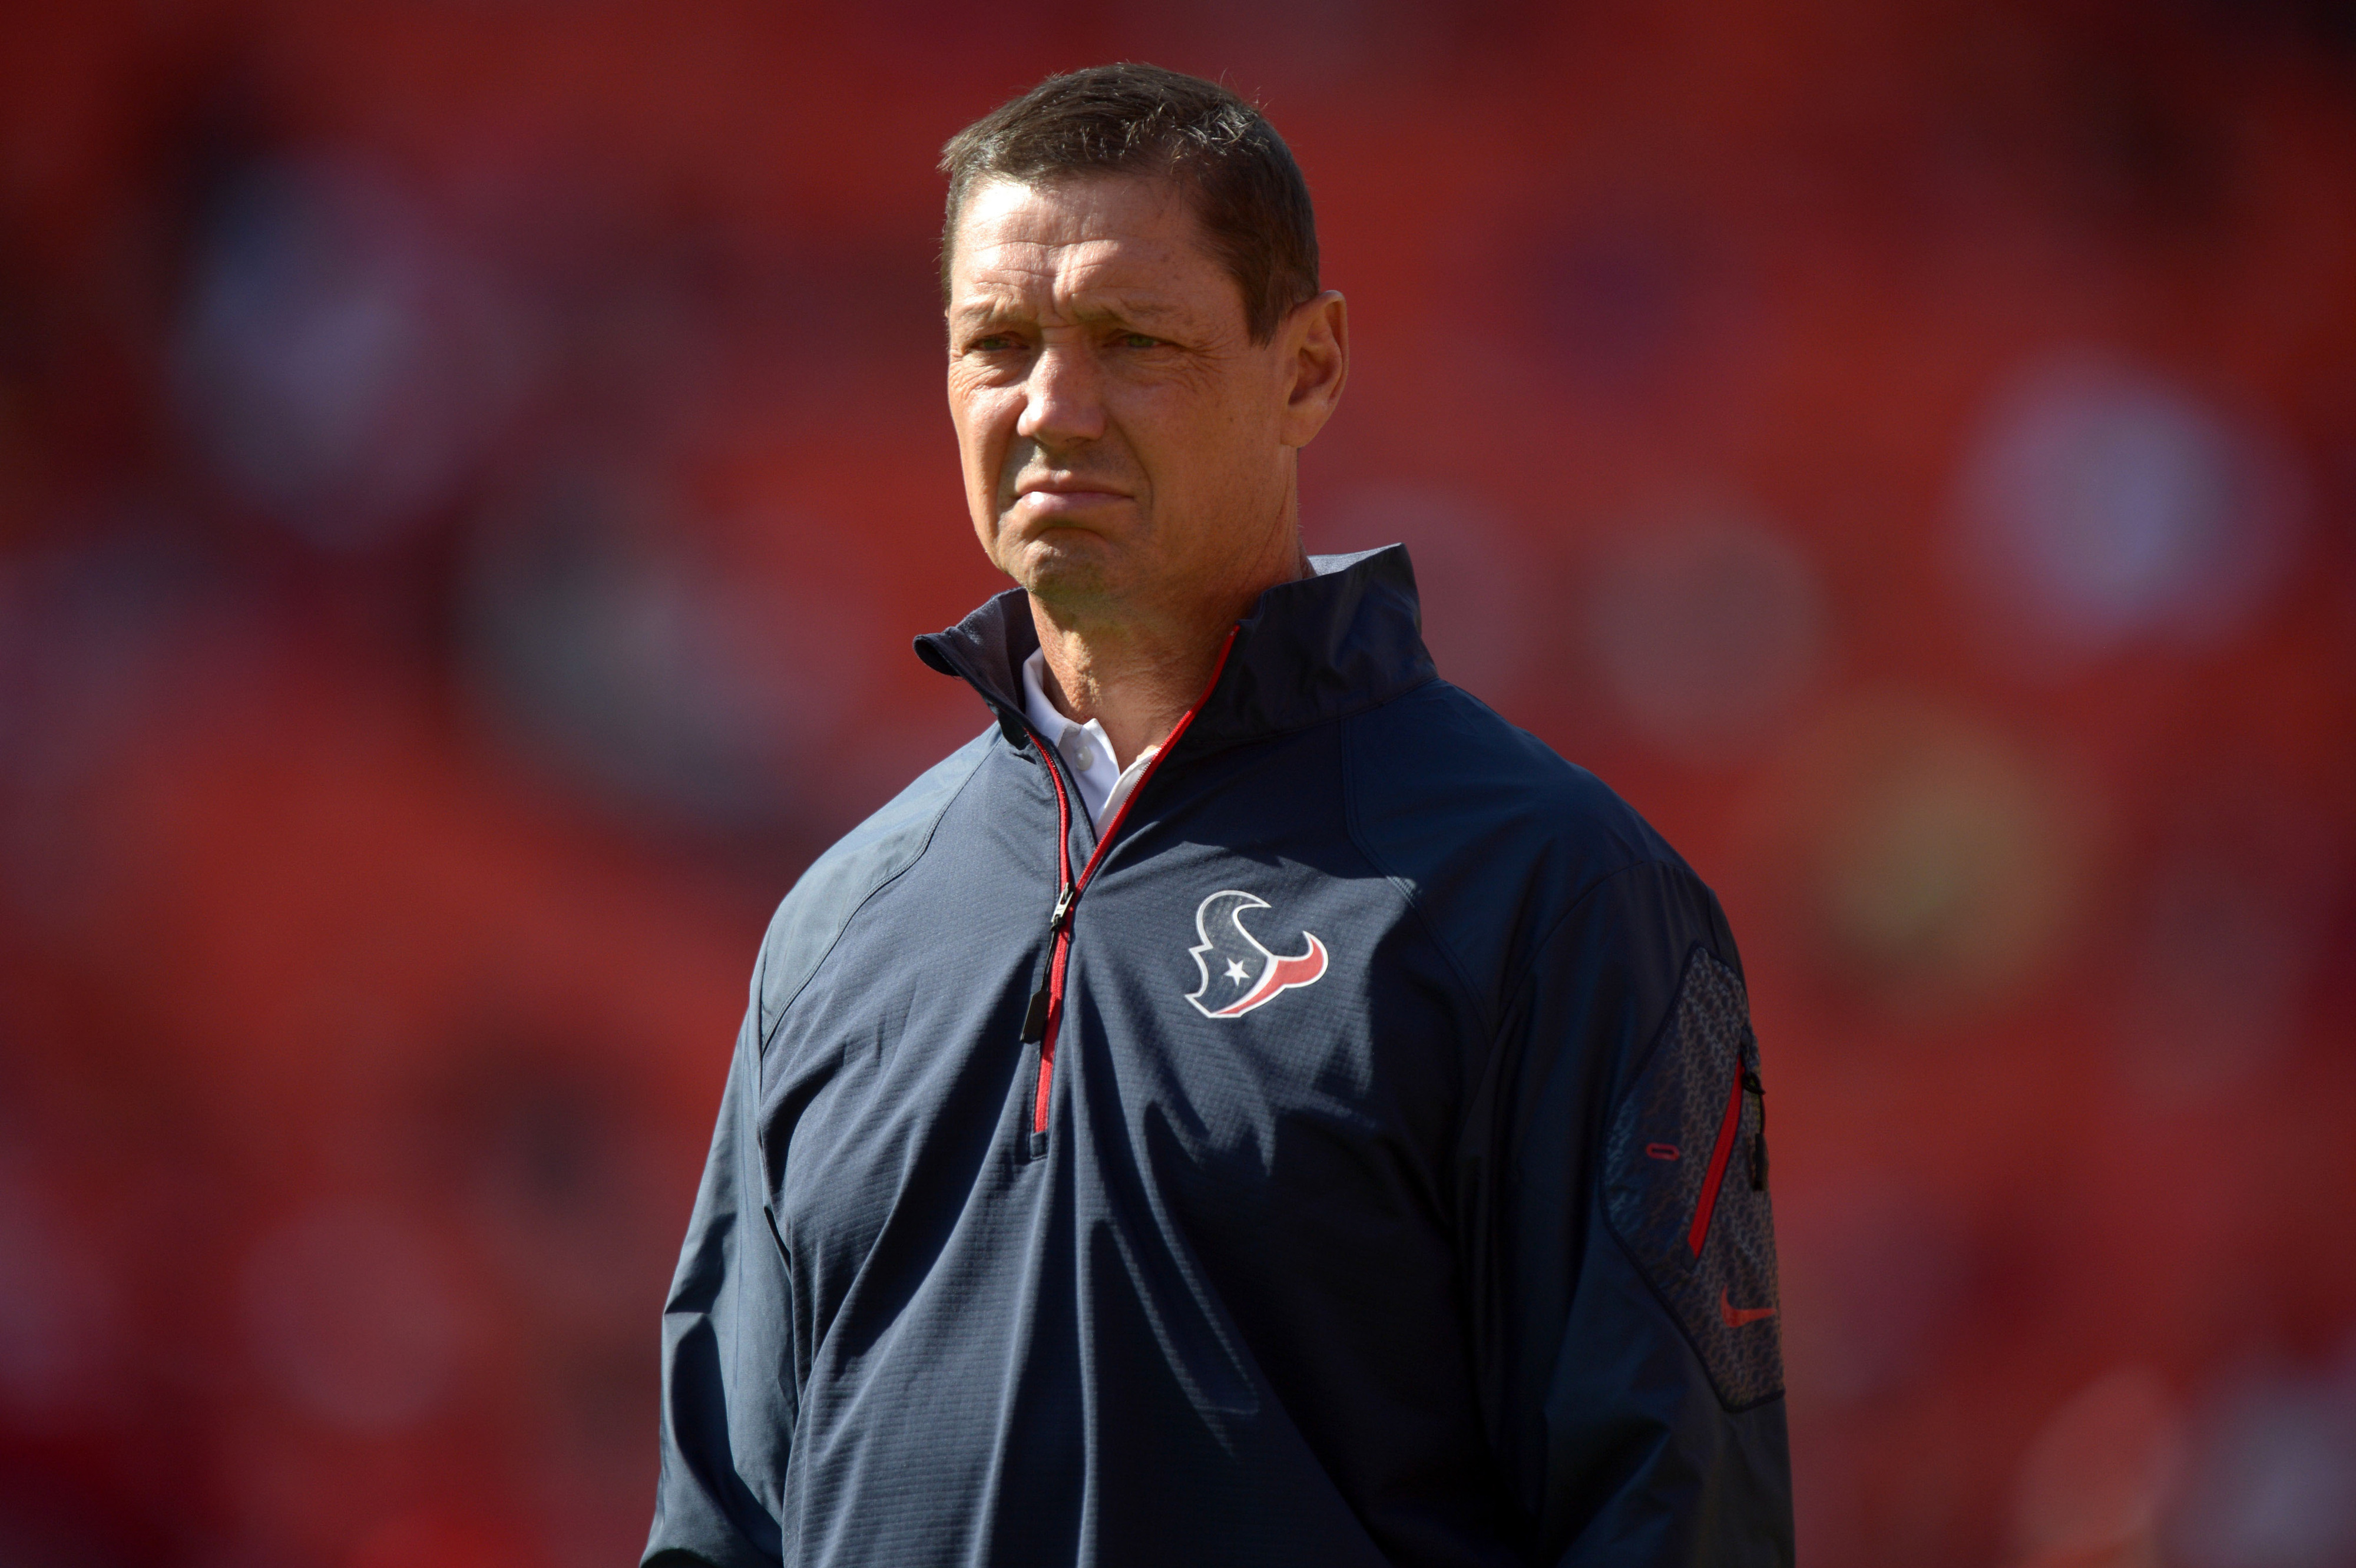 Rick Dennison has lots of time to watch the game, what with Gary Kubiak doing Dennison's job and all.